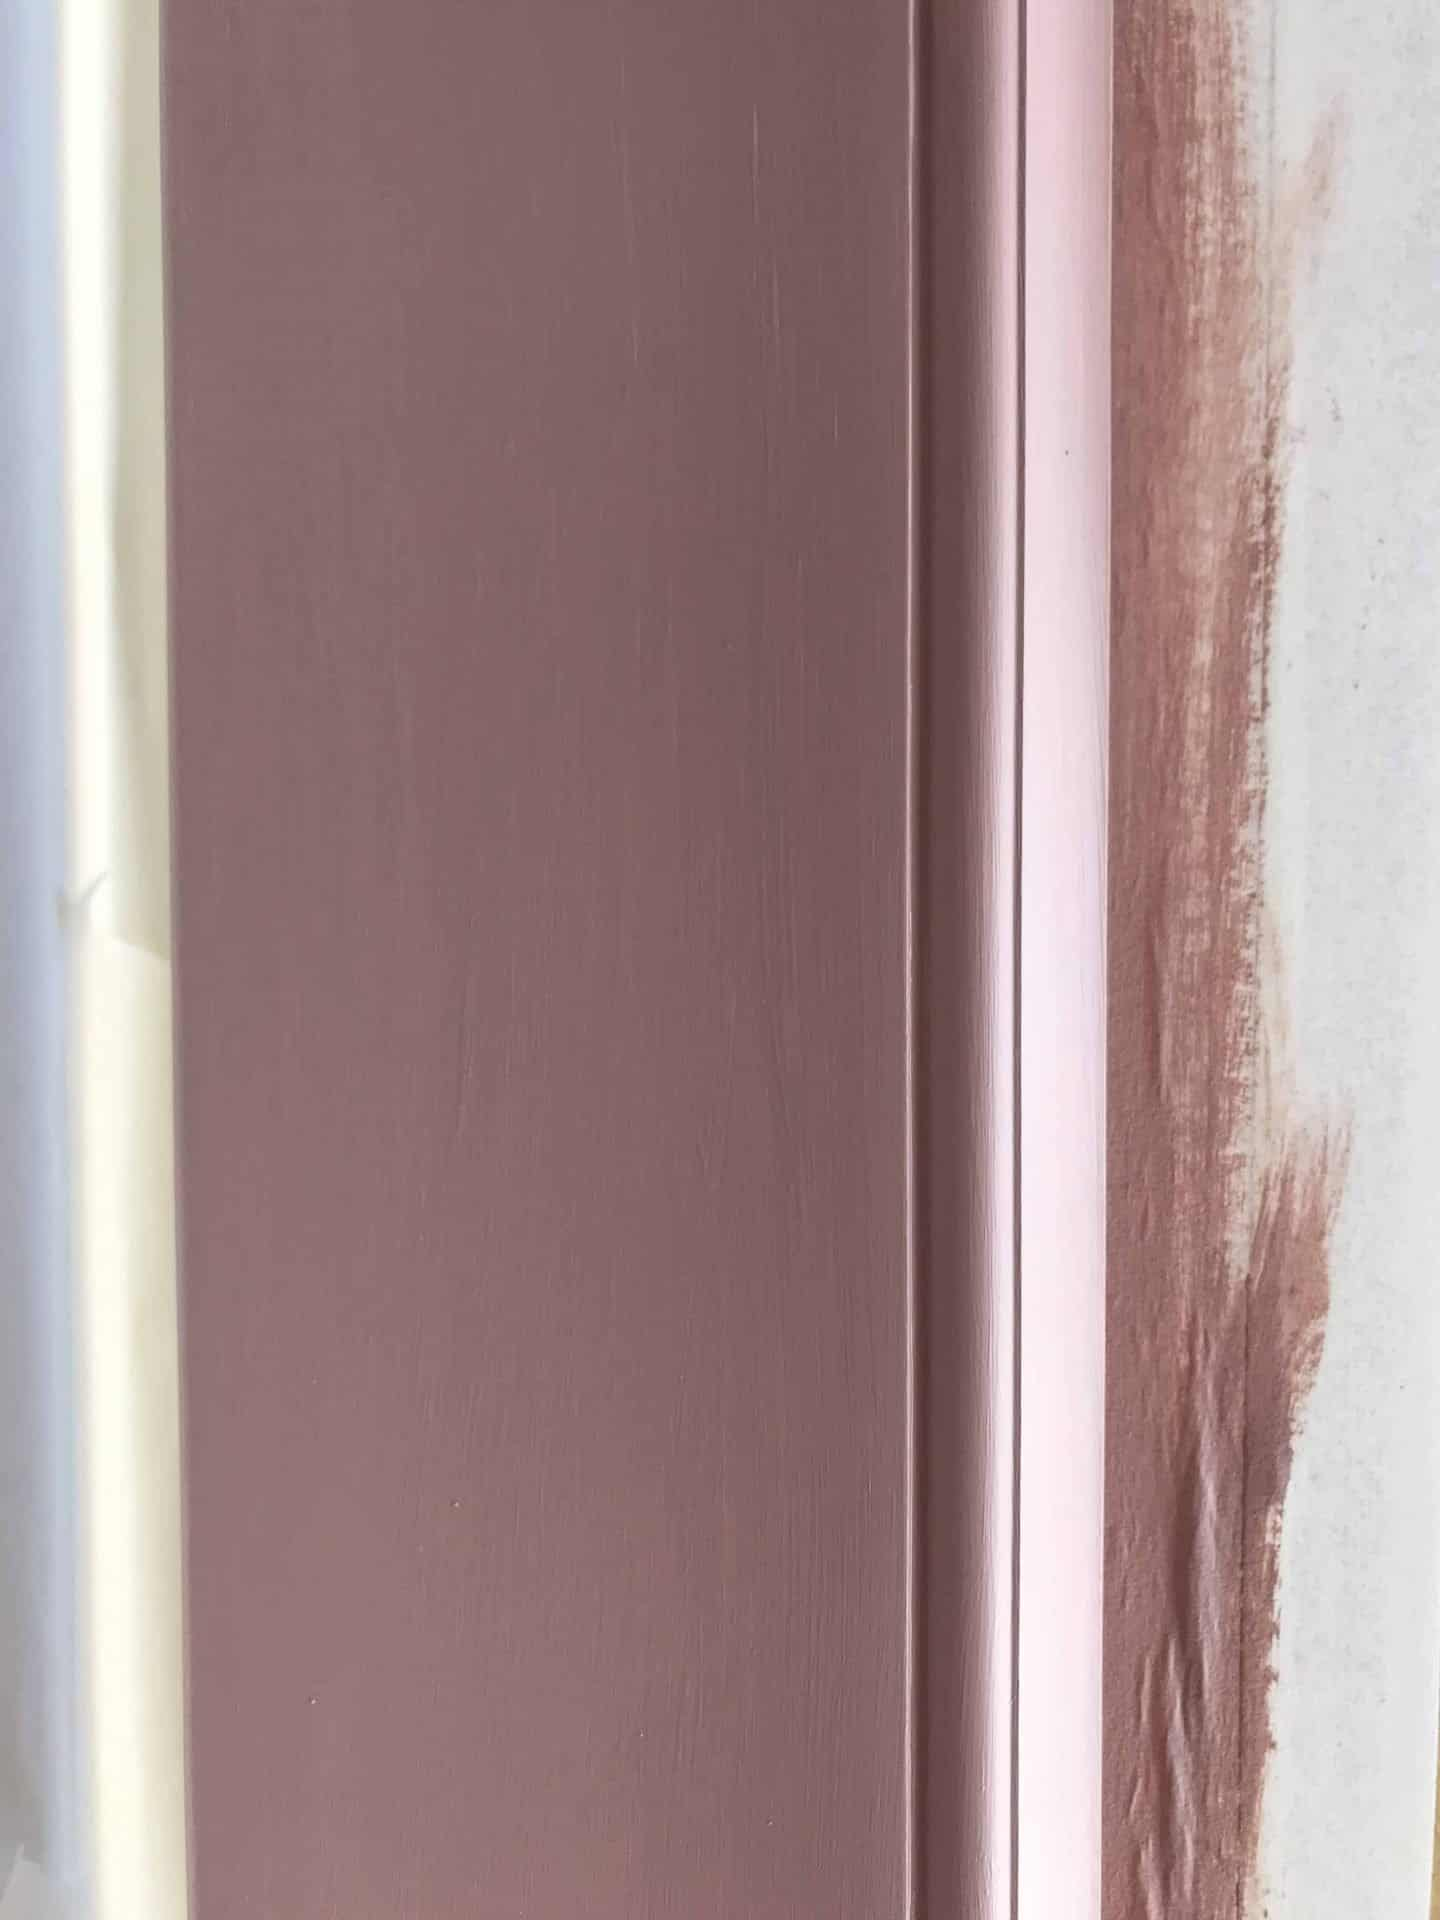 3 coats of Frenchic Dusky Blush Al Fresco paint on a uPVC door